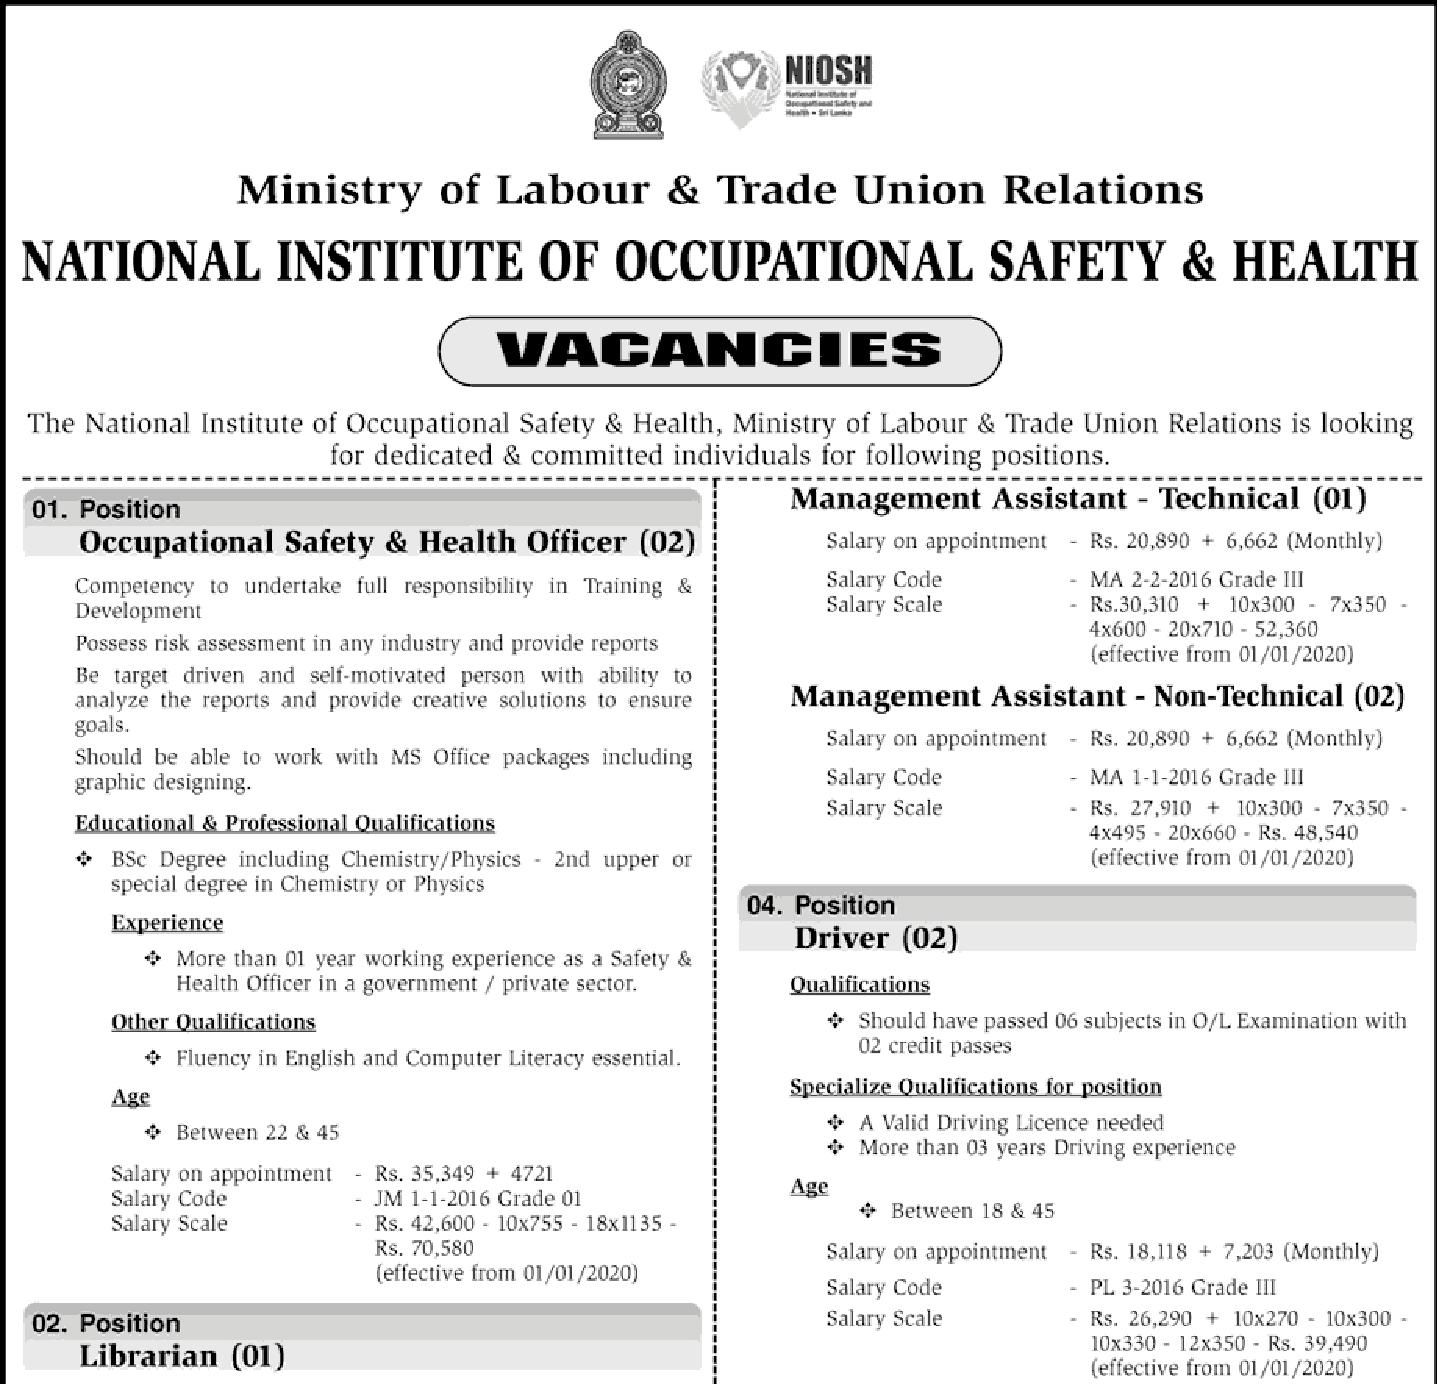 Sri Lankan Government Job Vacancies at National Institute